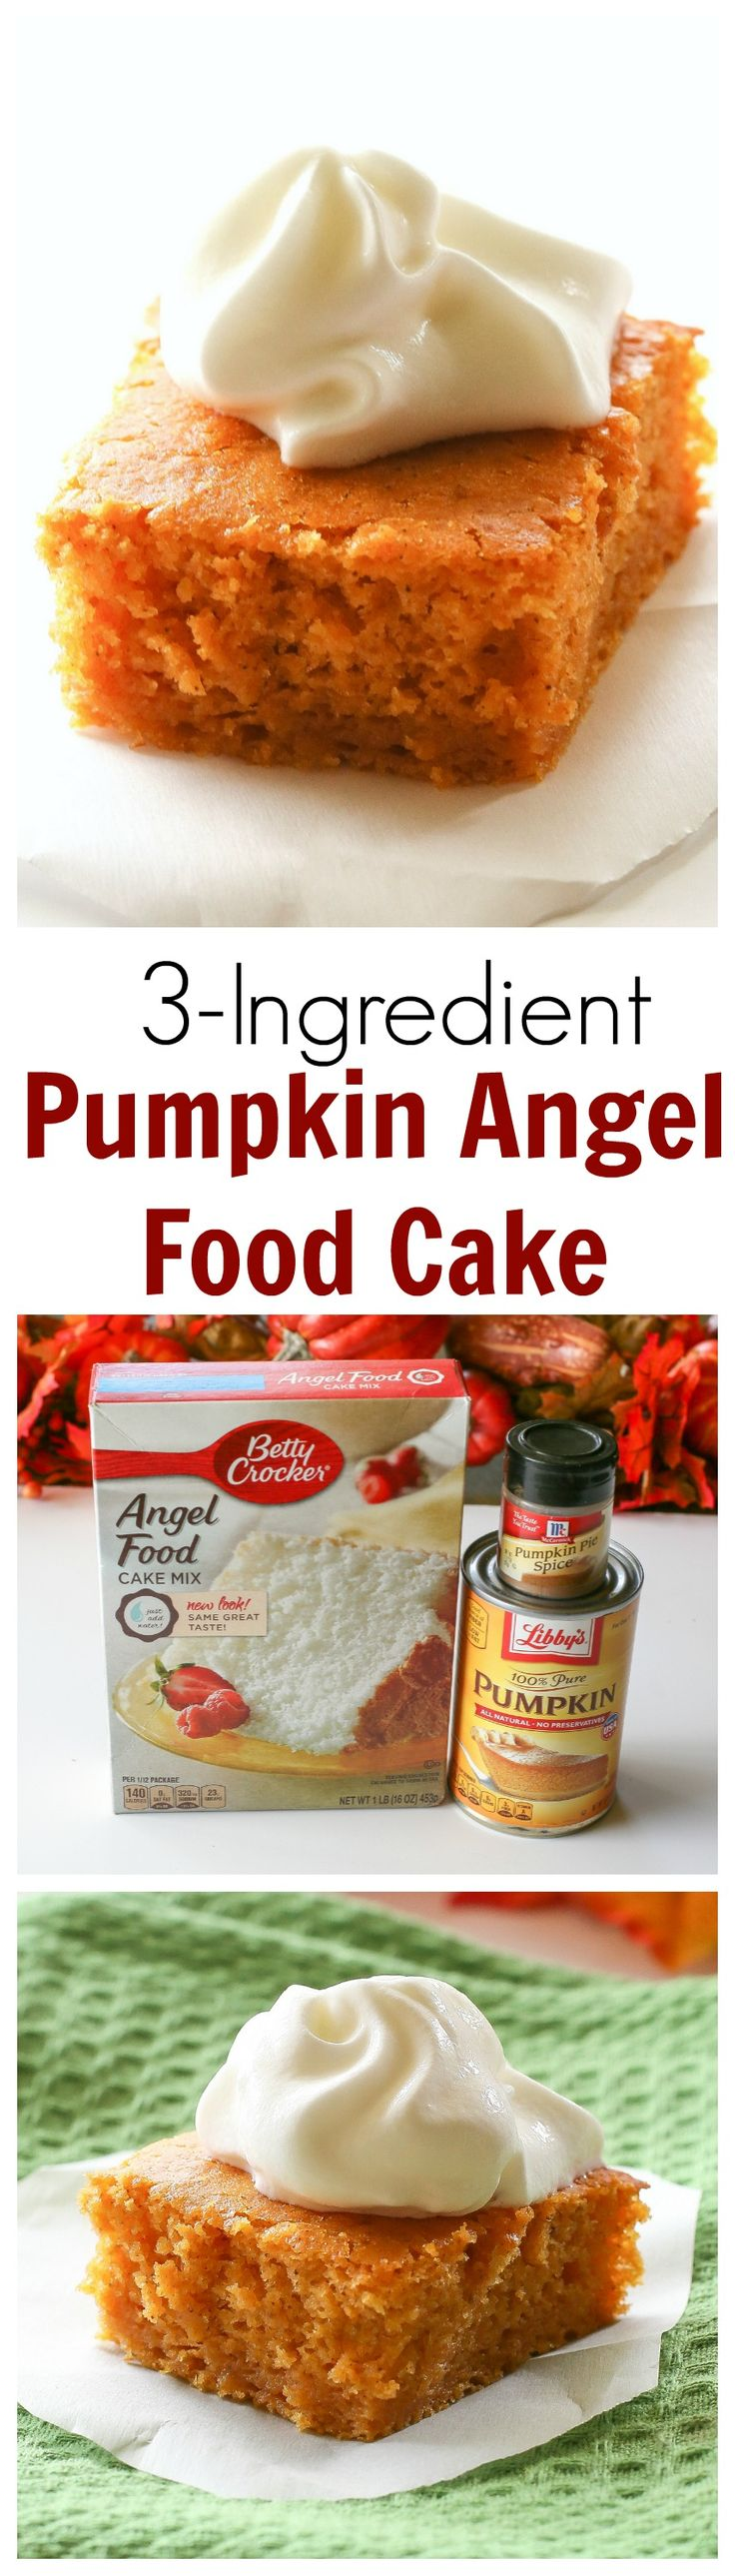 Healthy Angel Food Cake Recipe Only 95 Calories Sugar